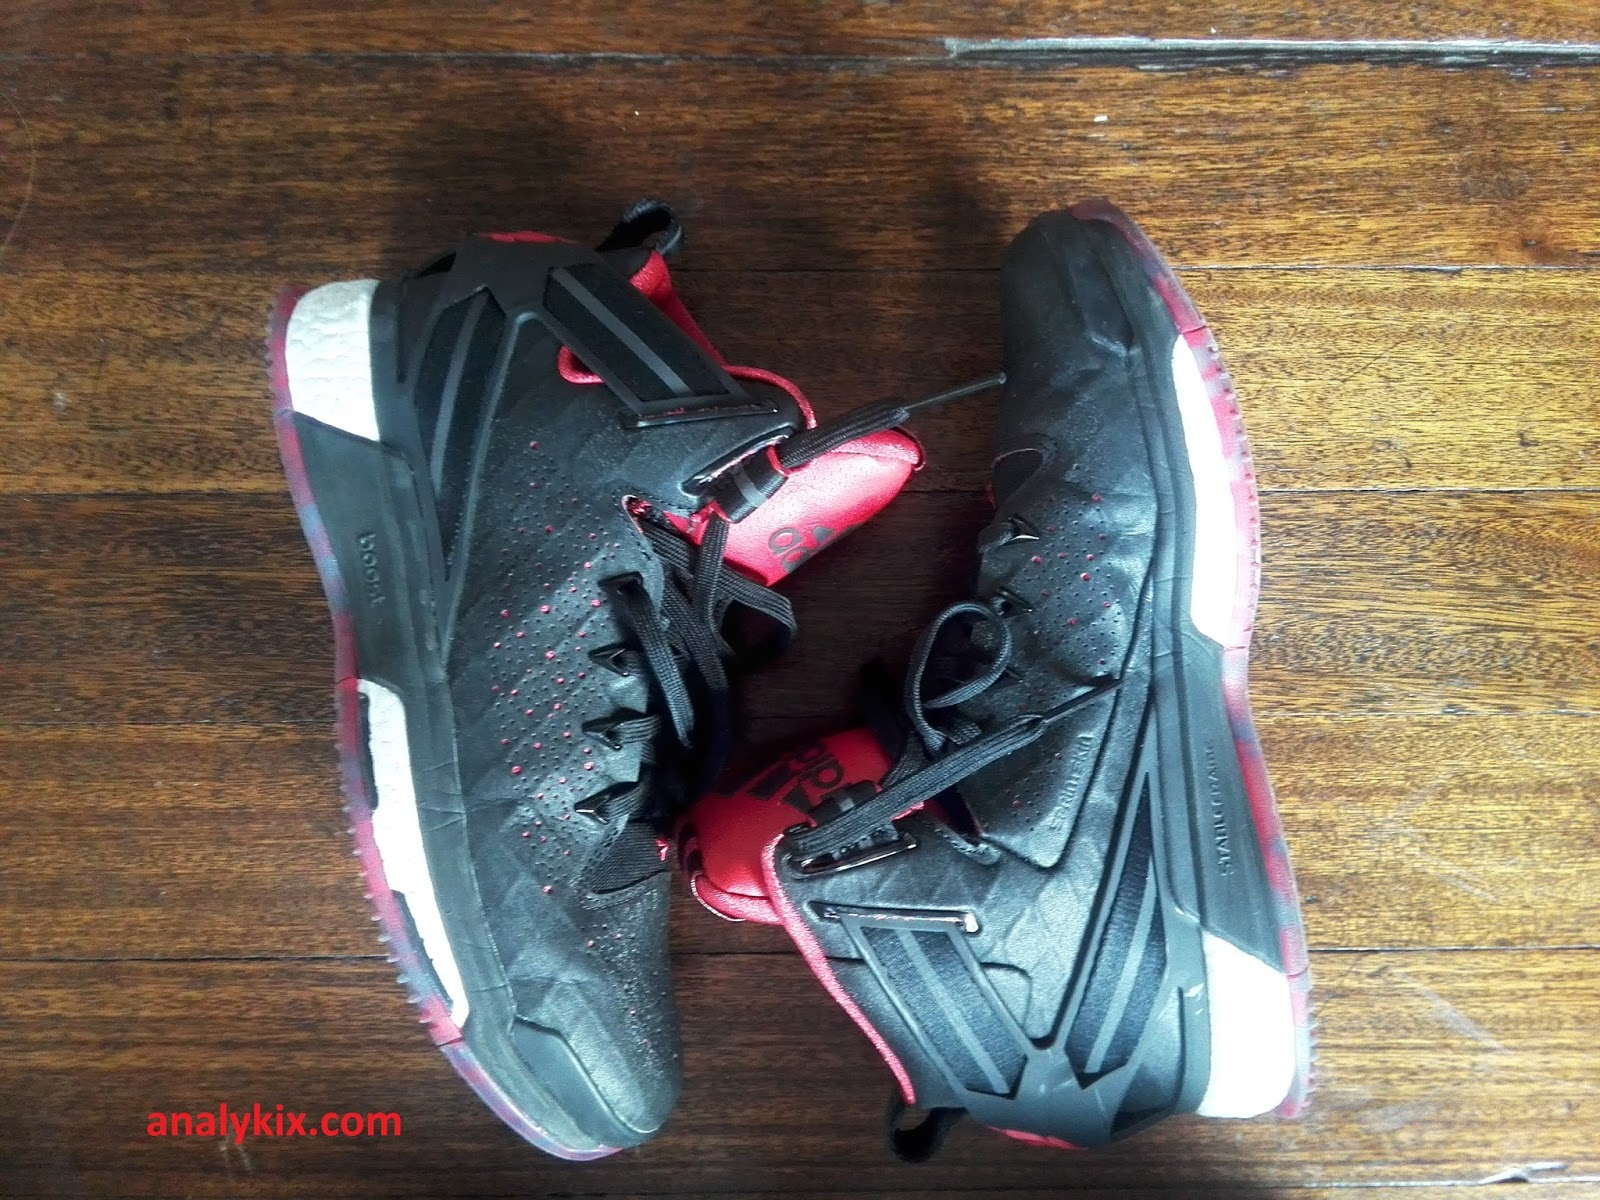 outlet store 9d7e0 b5c90 Performance Review Adidas DRose 6  Analykix